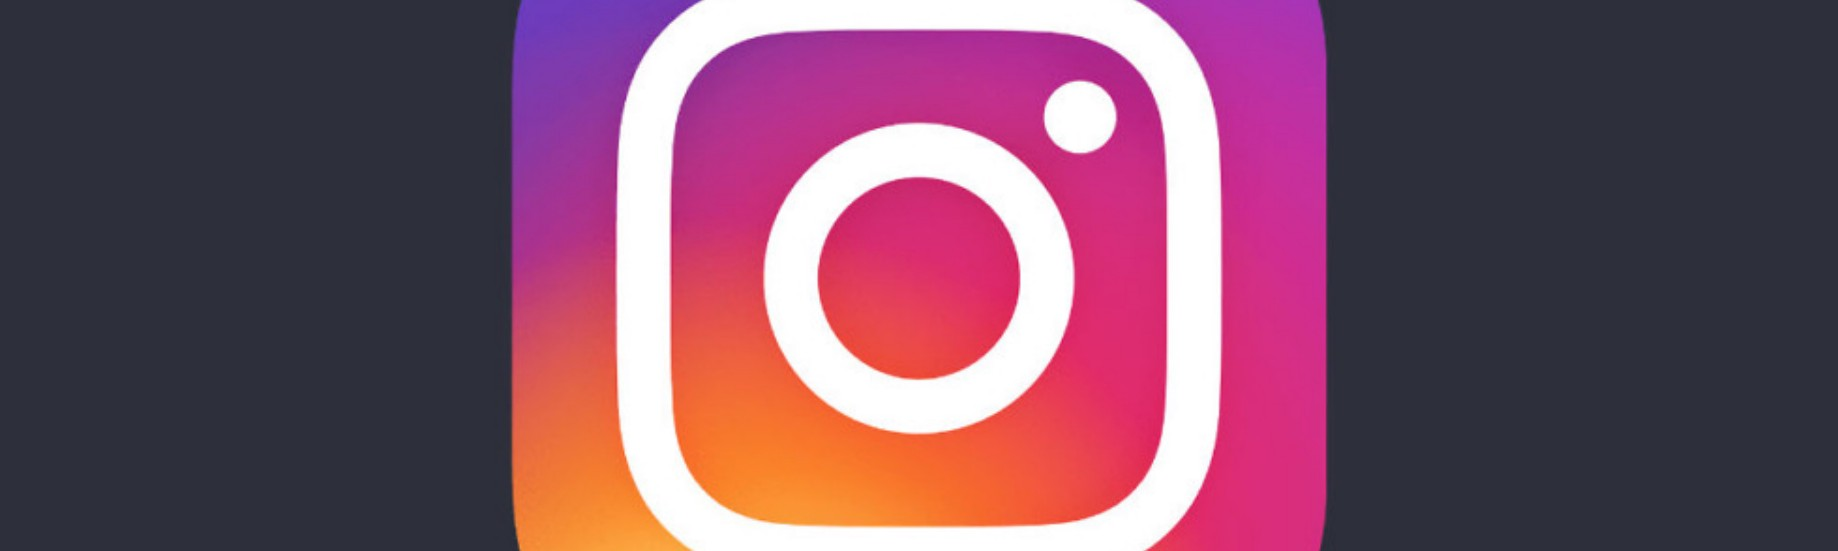 how instagram growth service works entrepreneurship in a box How Does An Instagram Growth Service Work By Justin Colombo Medium